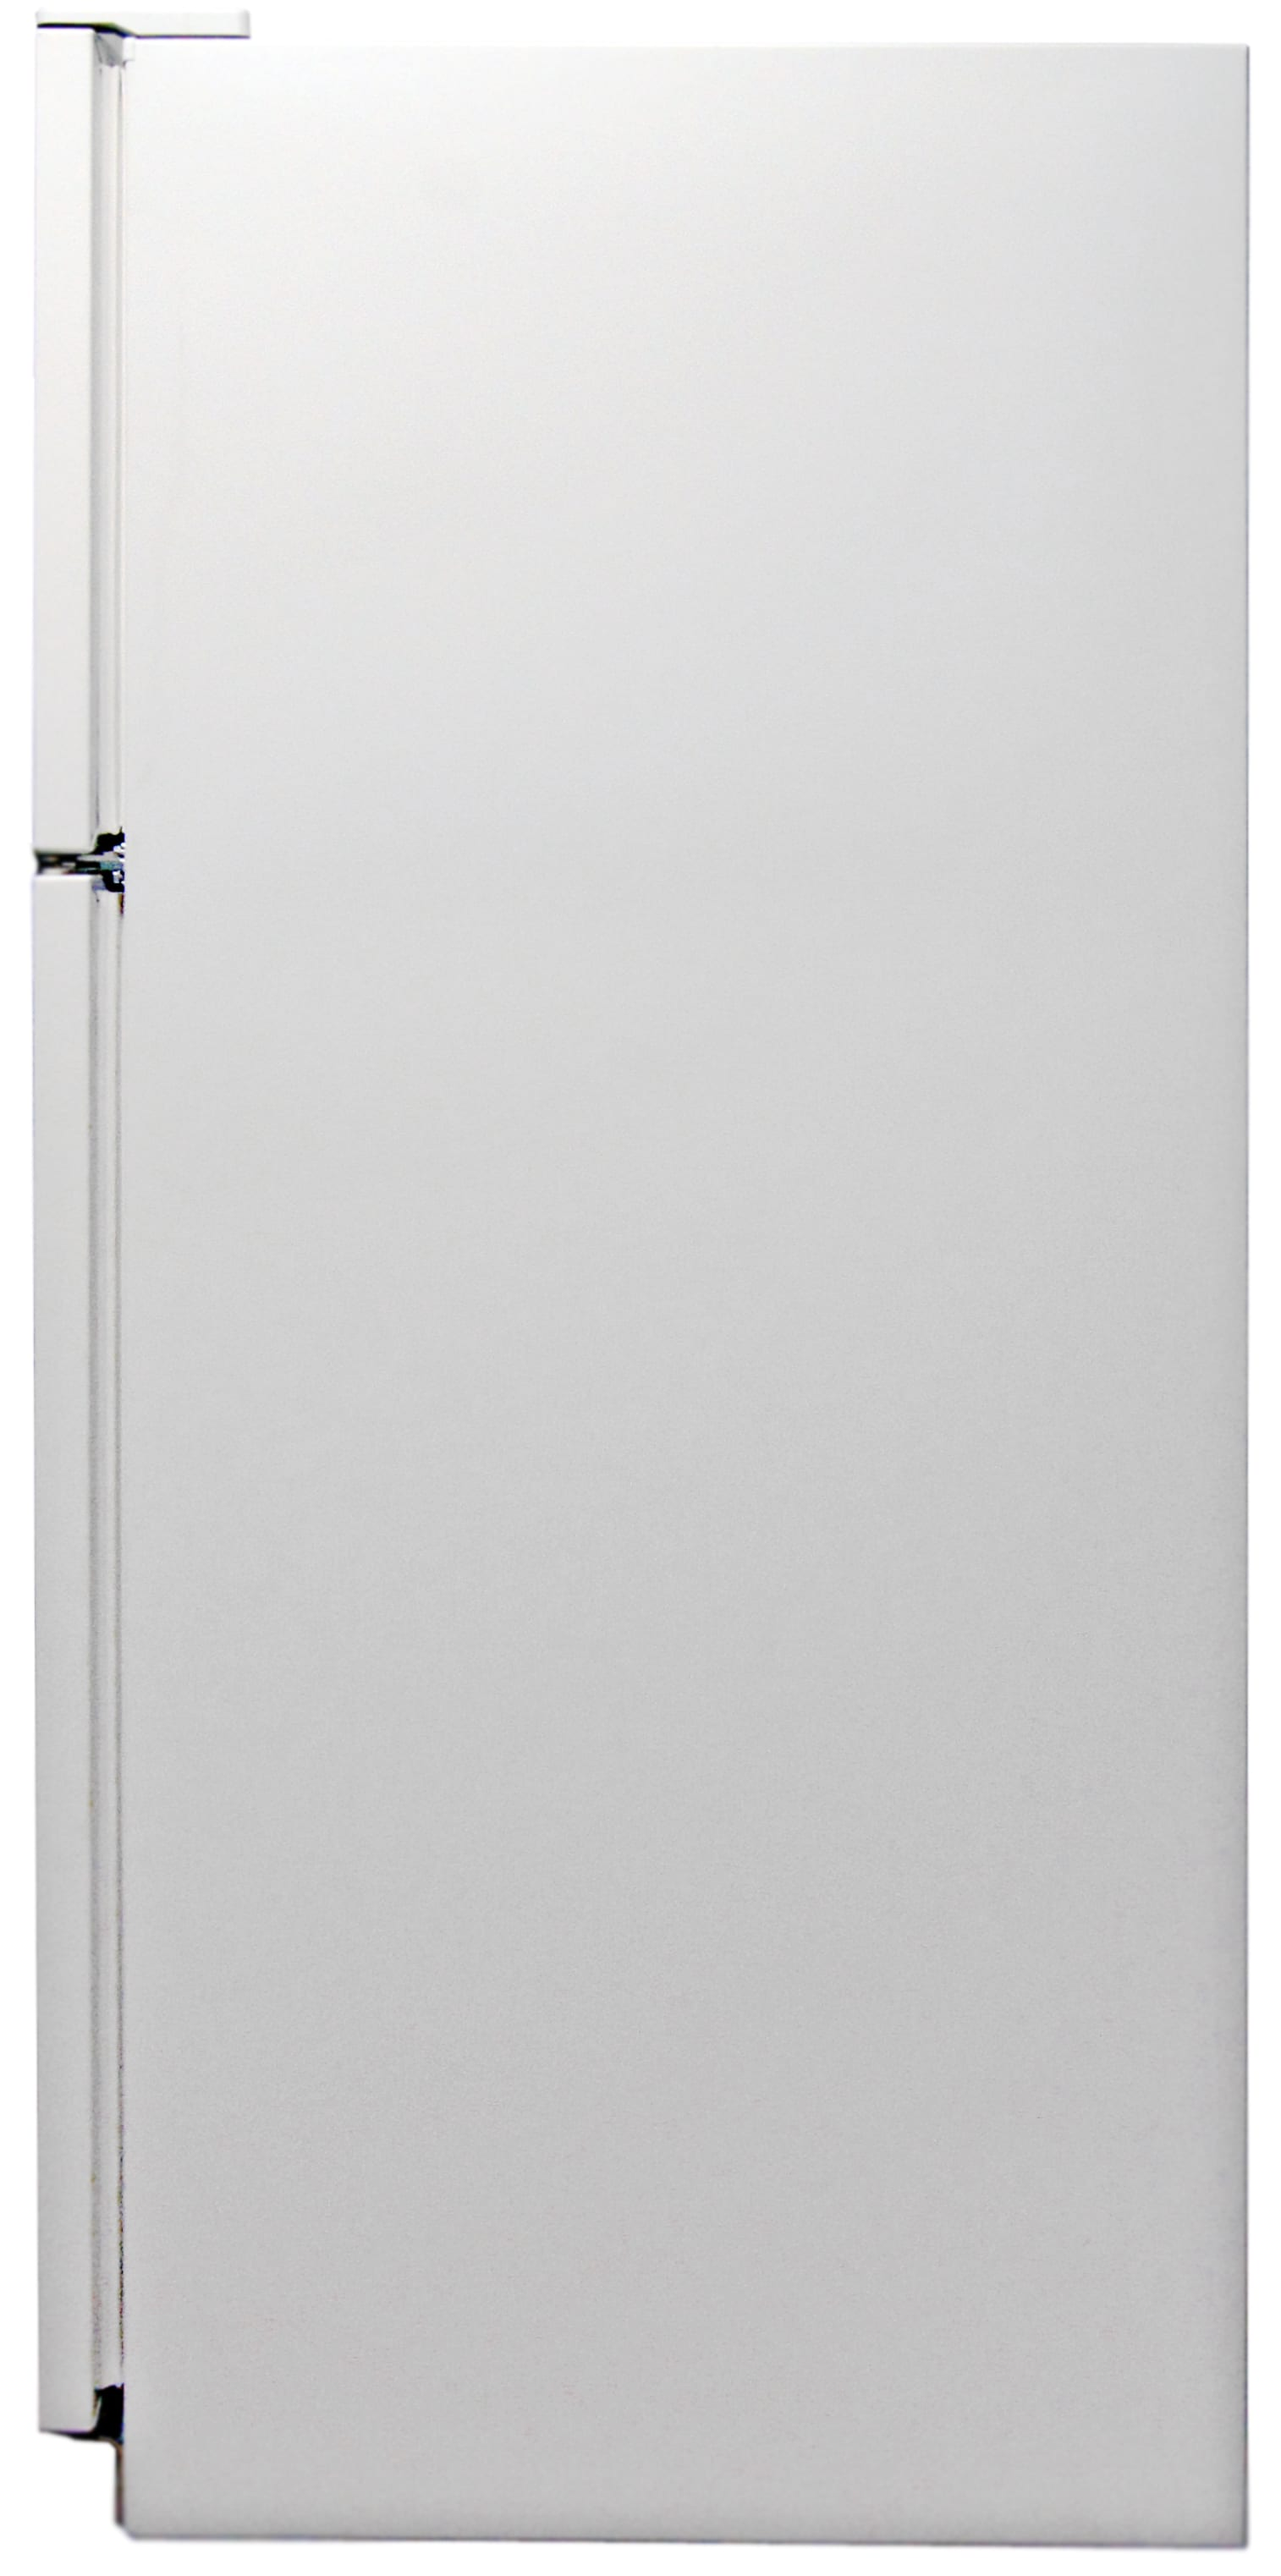 The Kenmore 72152's white matte side compliments the matching front.